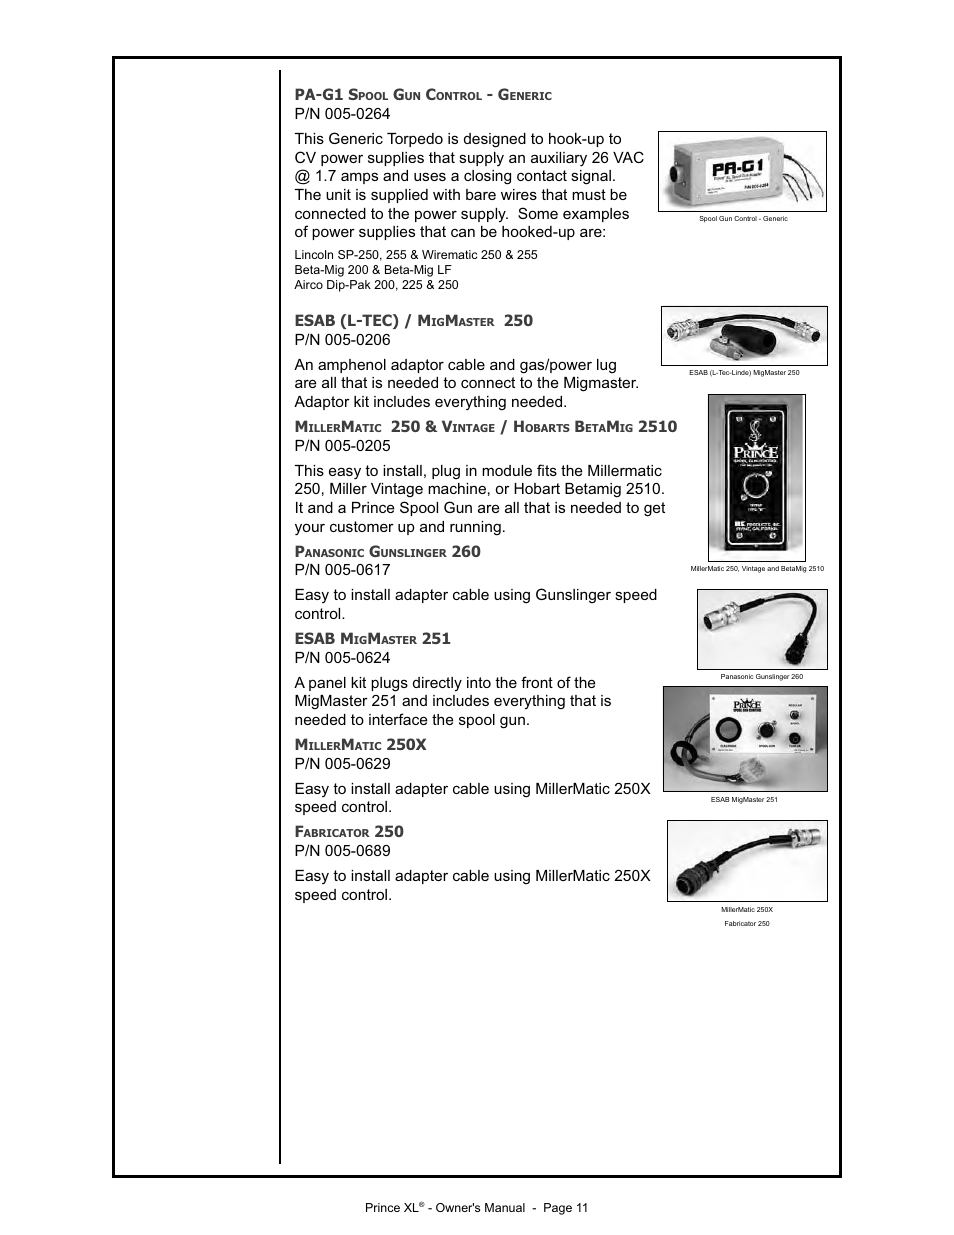 lincoln electric im818 prince xl 350 user manual page 18 45 rh manualsdir com Airco Regulator airco dip pak 200 parts